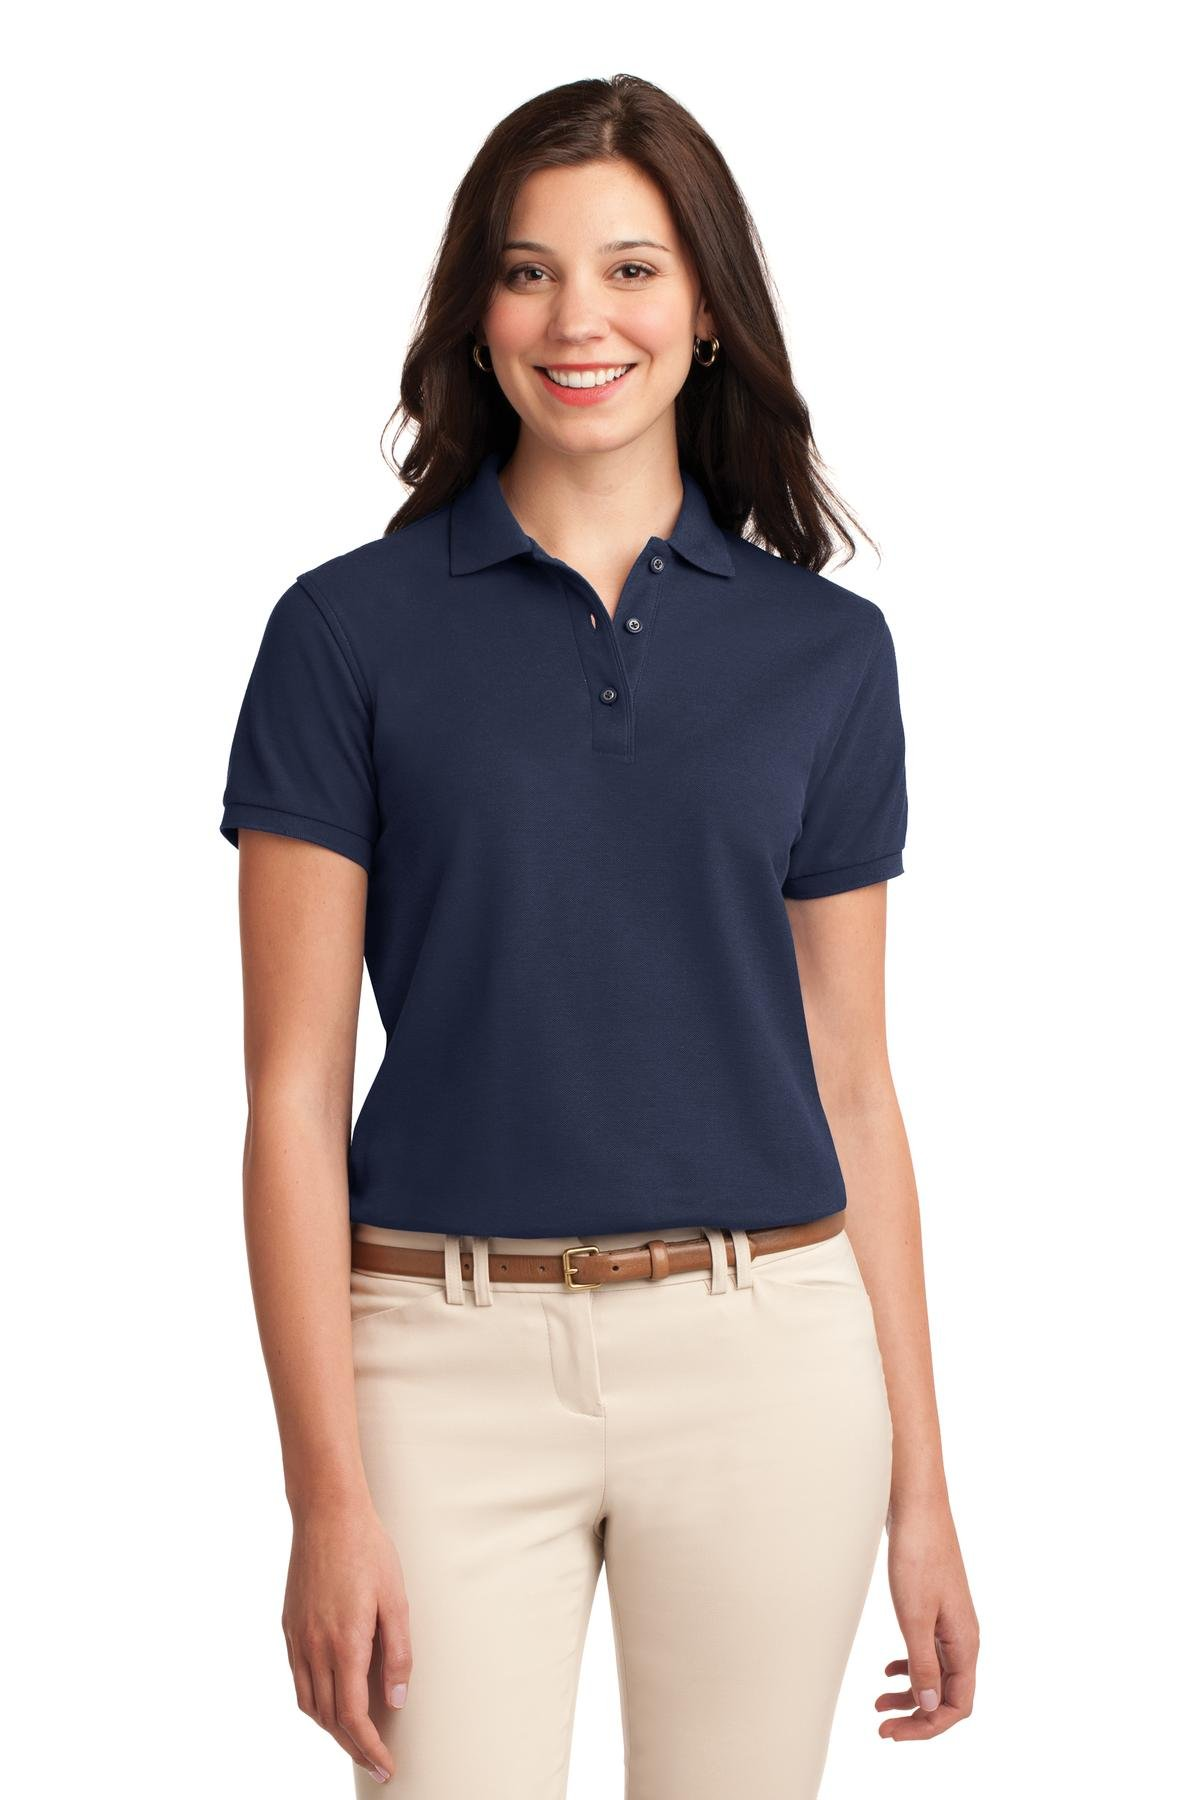 Port Authority Women's Silk Touch Polo M Navy